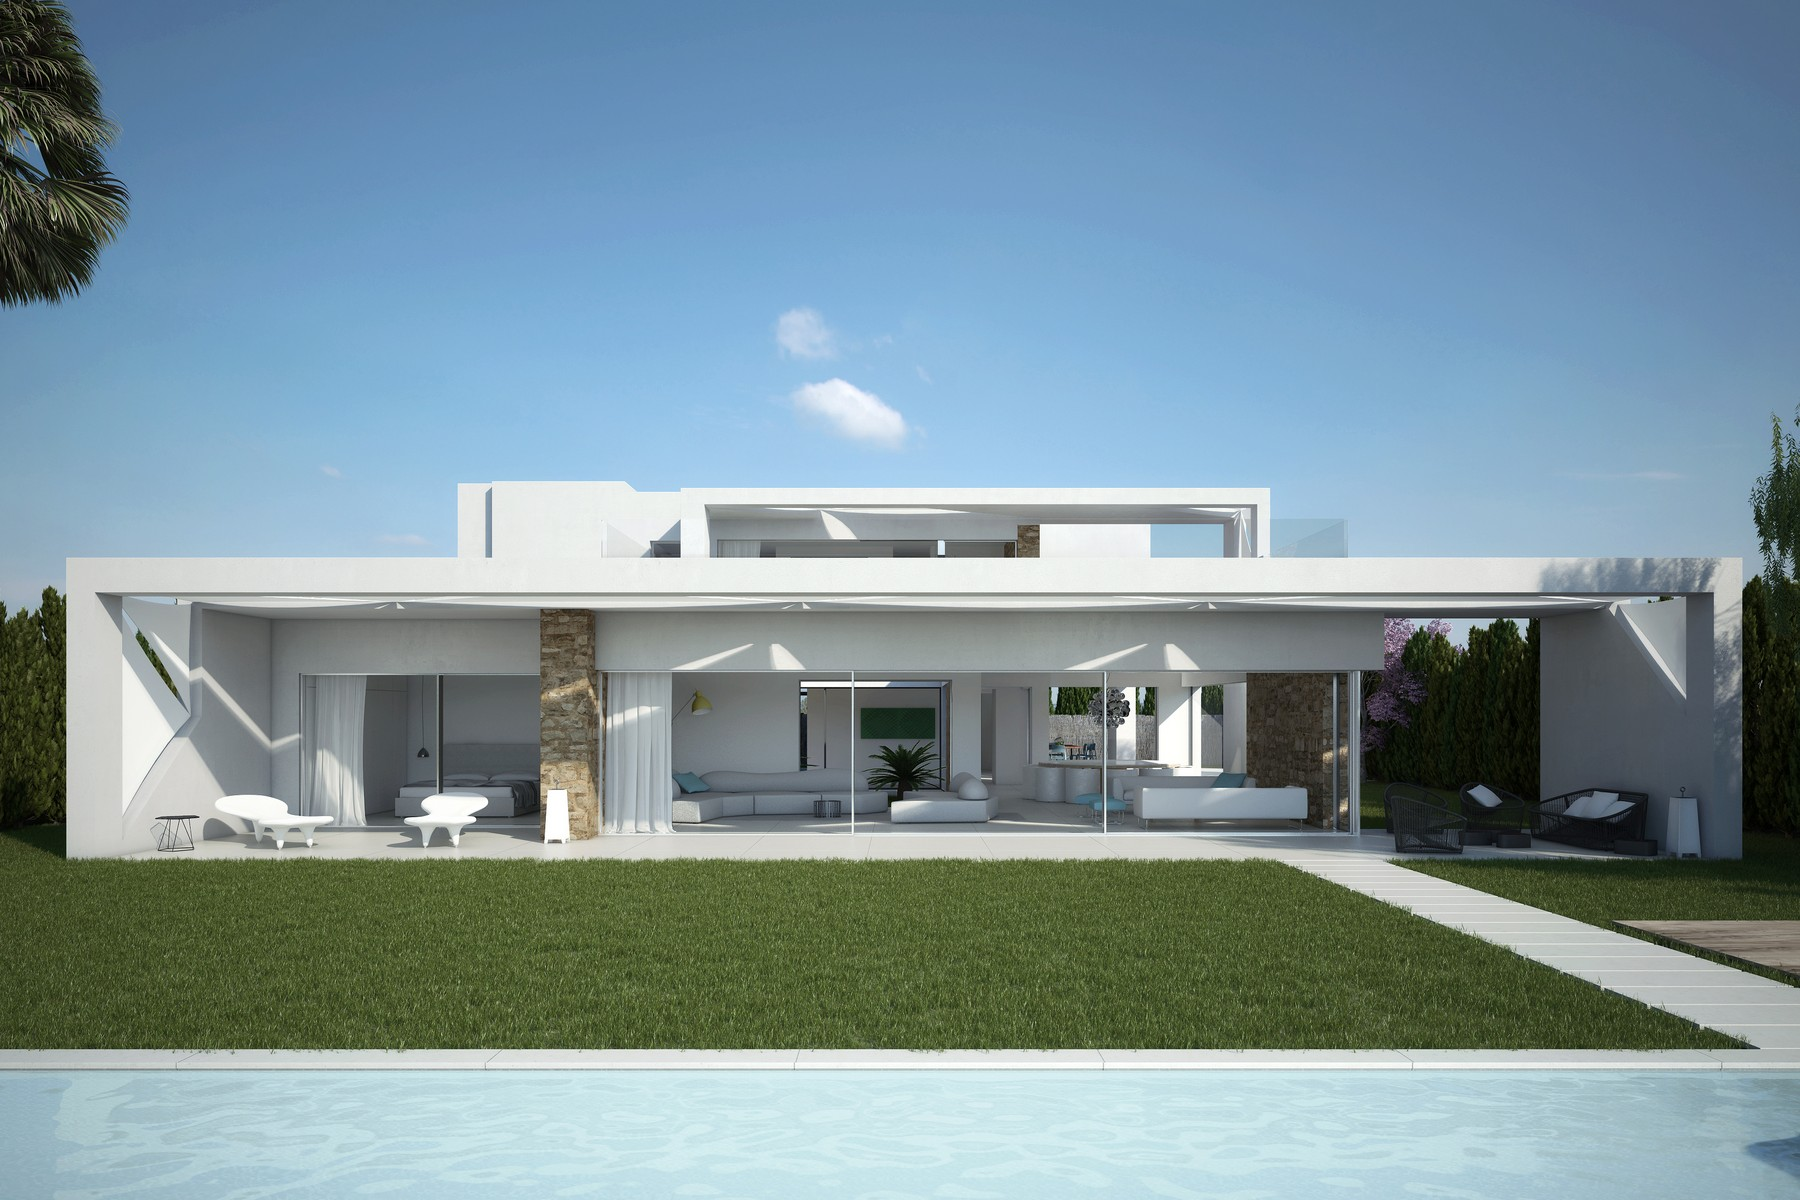 Single Family Home for Sale at Brand New Development In Exclusive Community Cala Conta, Ibiza, 07829 Spain